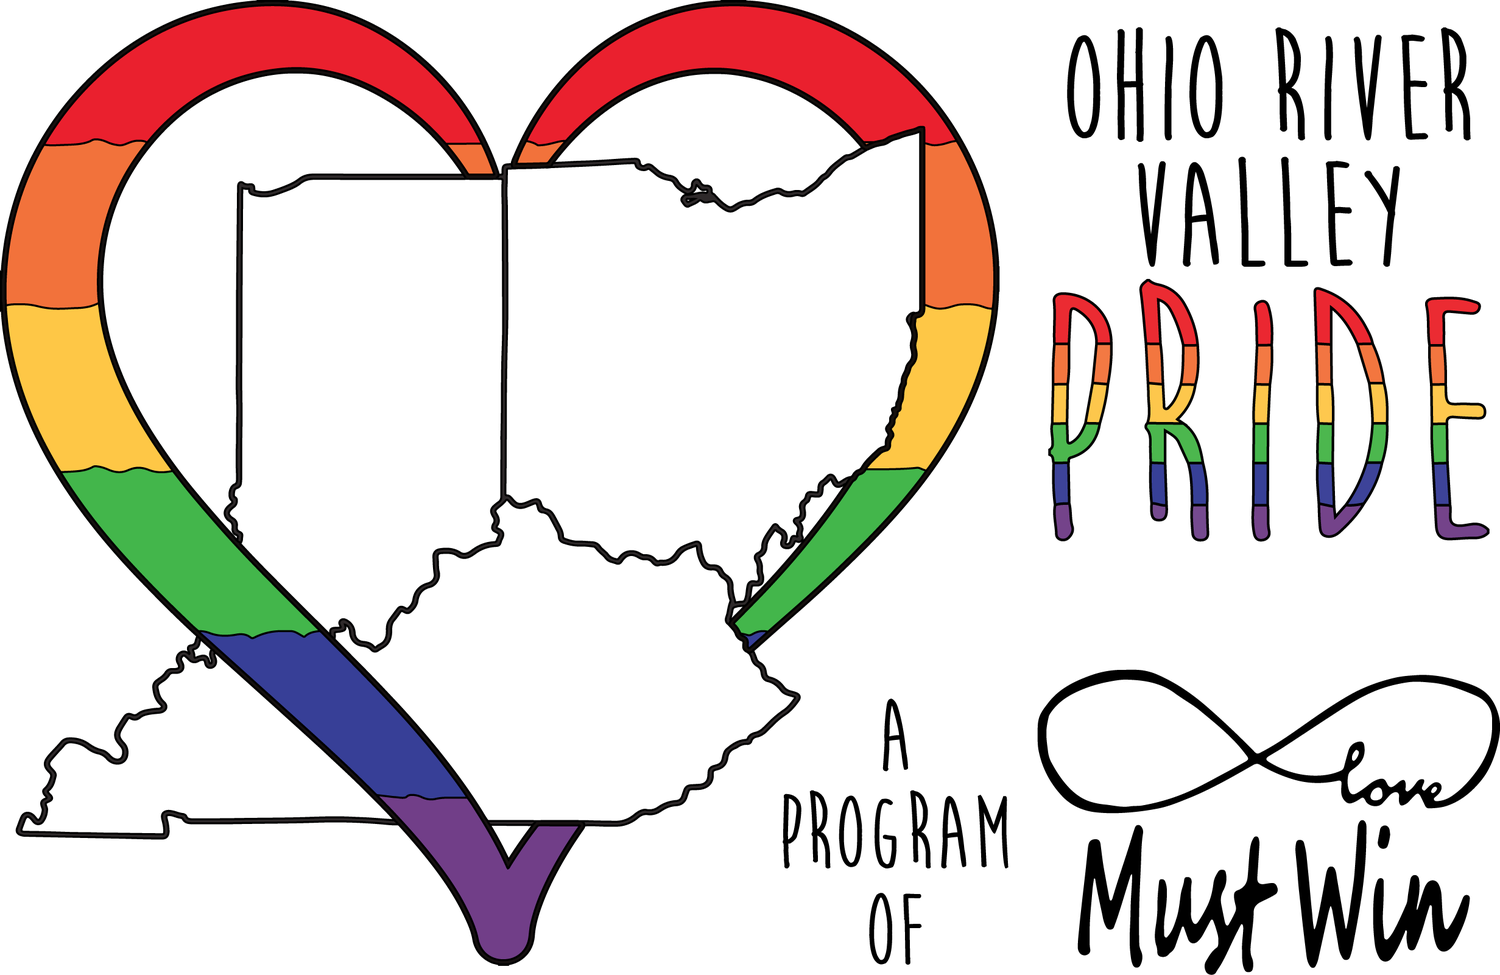 Ohio River Valley Pride Coalition